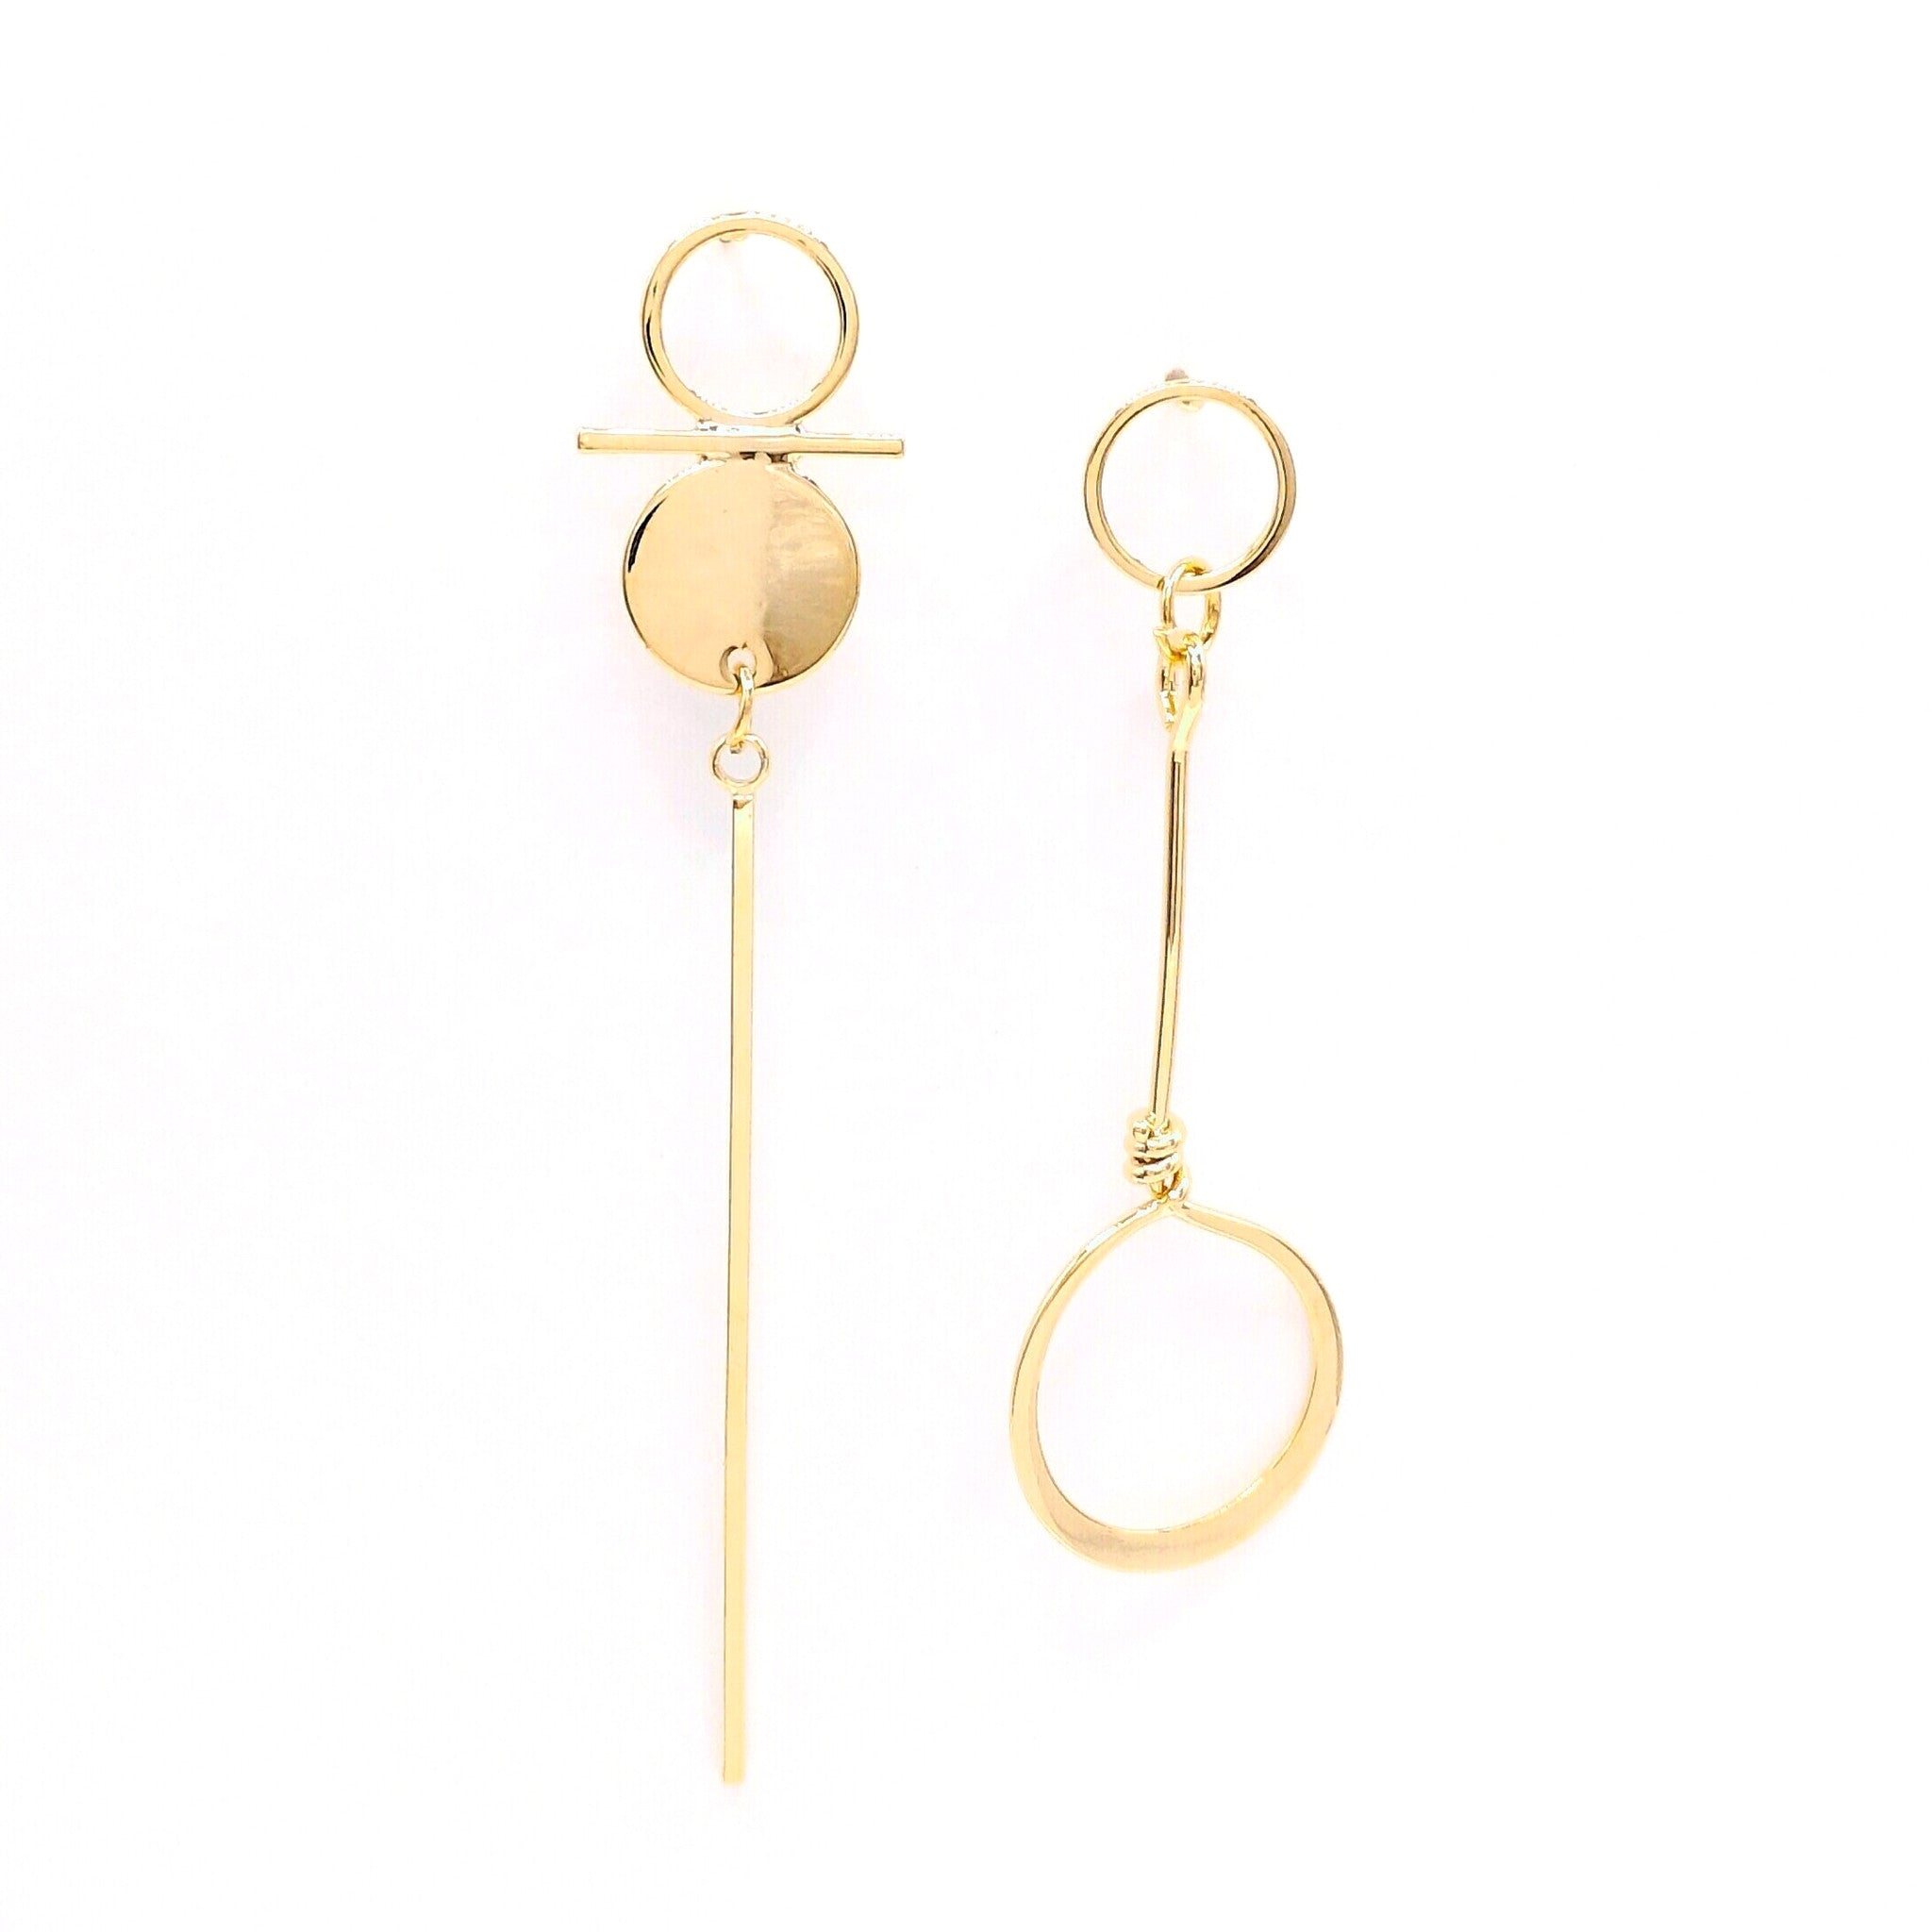 image moon juyee earrings customized clip earring sun on products asymmetric